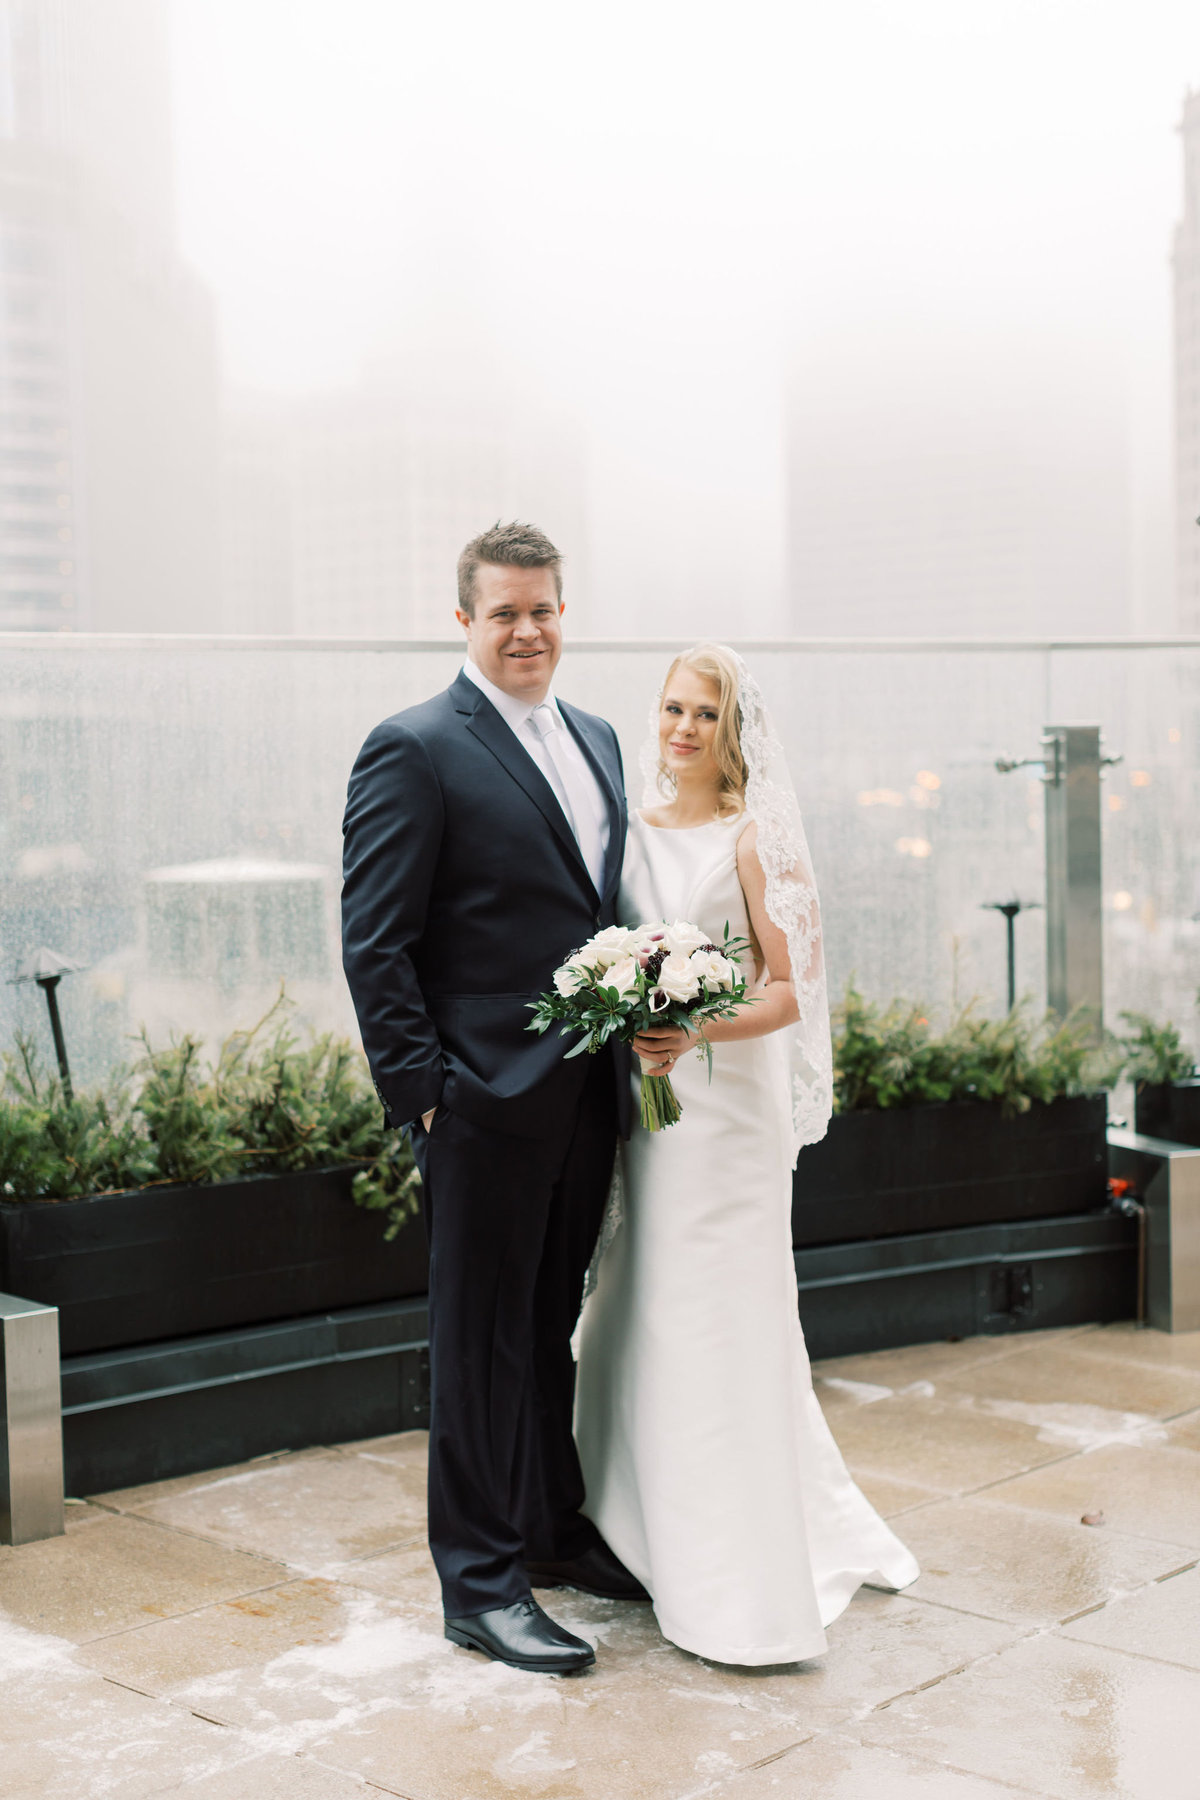 TiffaneyChildsPhotography-ChicagoWeddingPhotographer-Kimberly+Jimmy-ChicagoRenaissanceHotelWedding-BridalPortraits-34